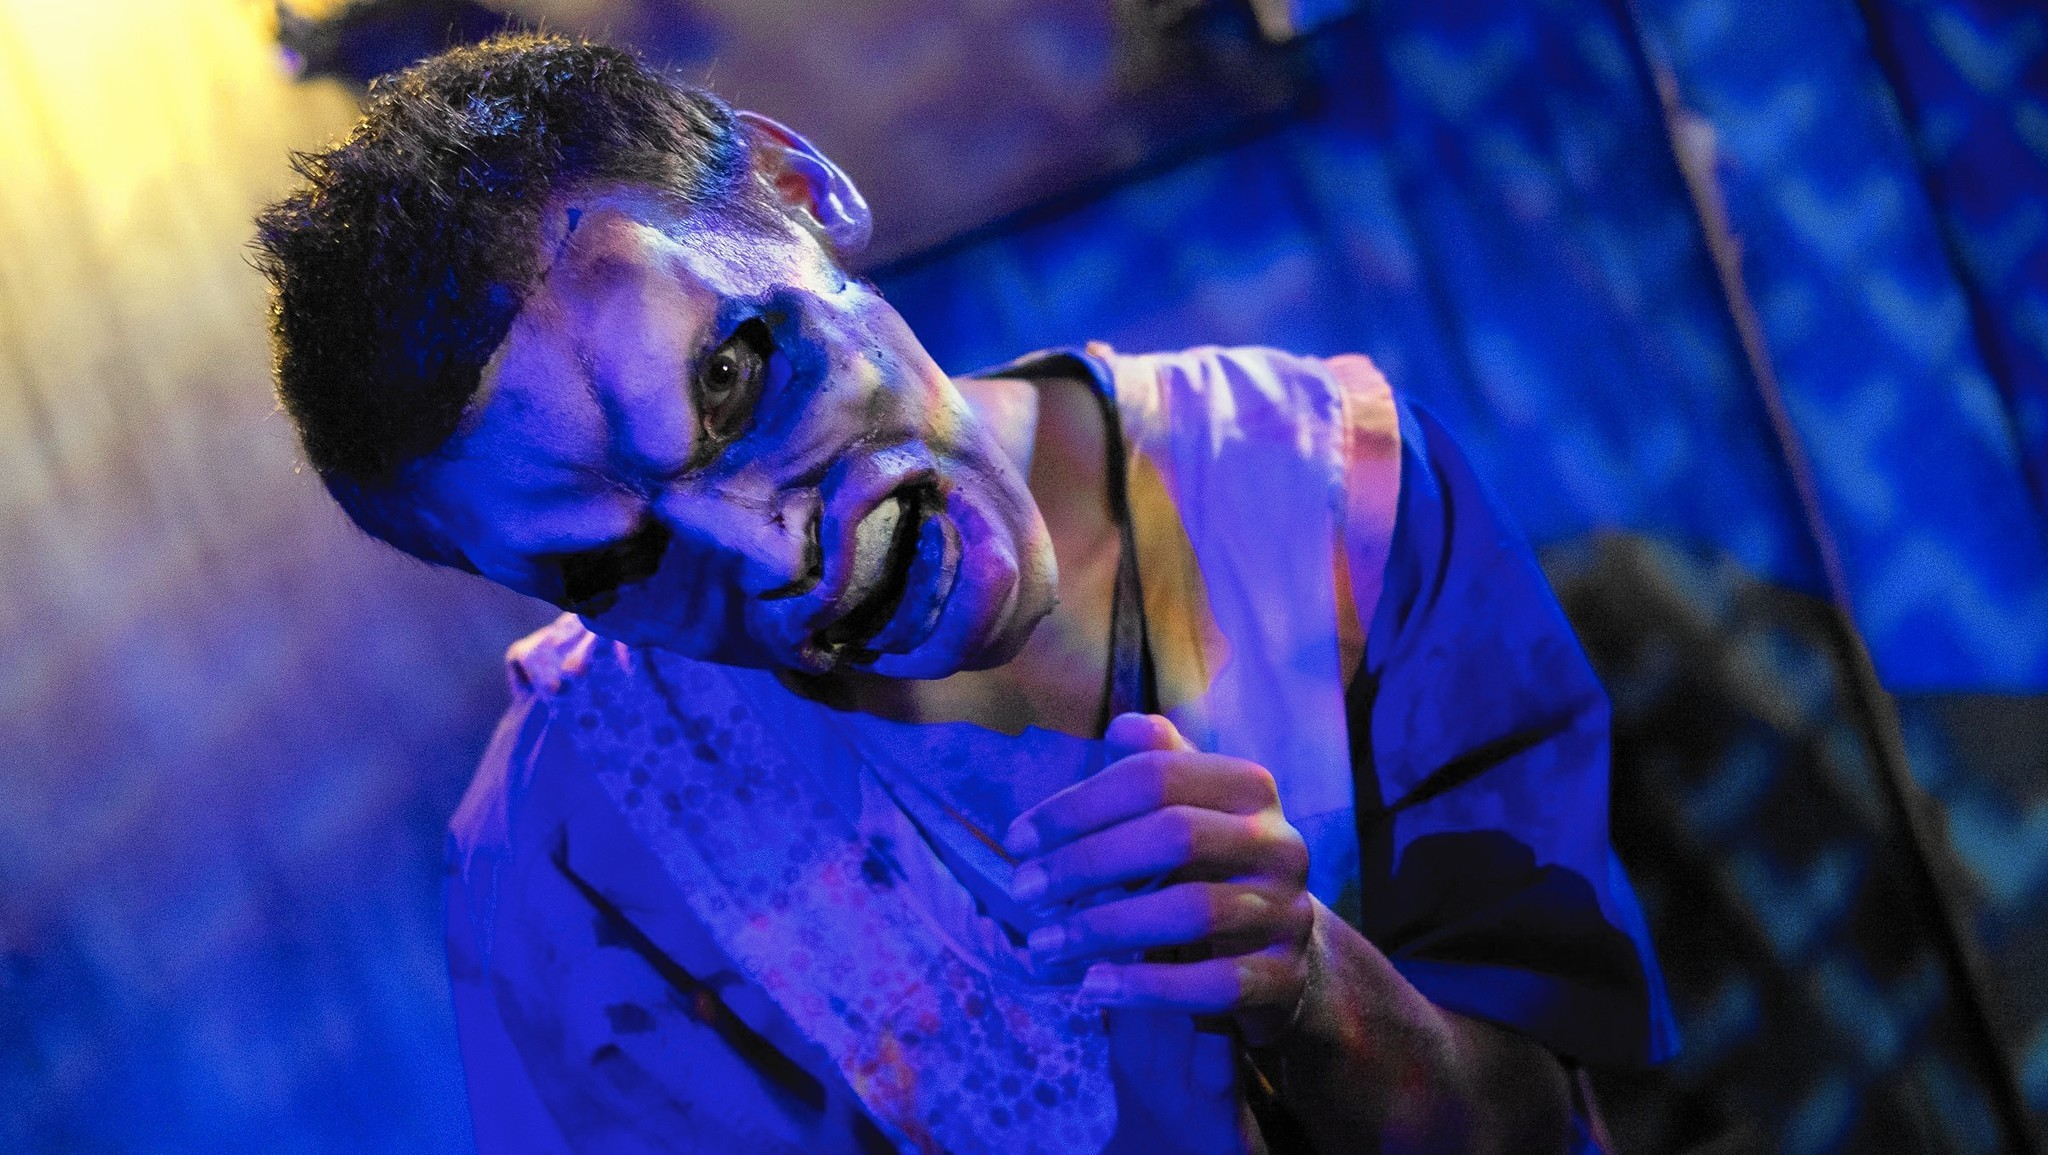 dorney park's halloween haunt ramps up the scares - the morning call